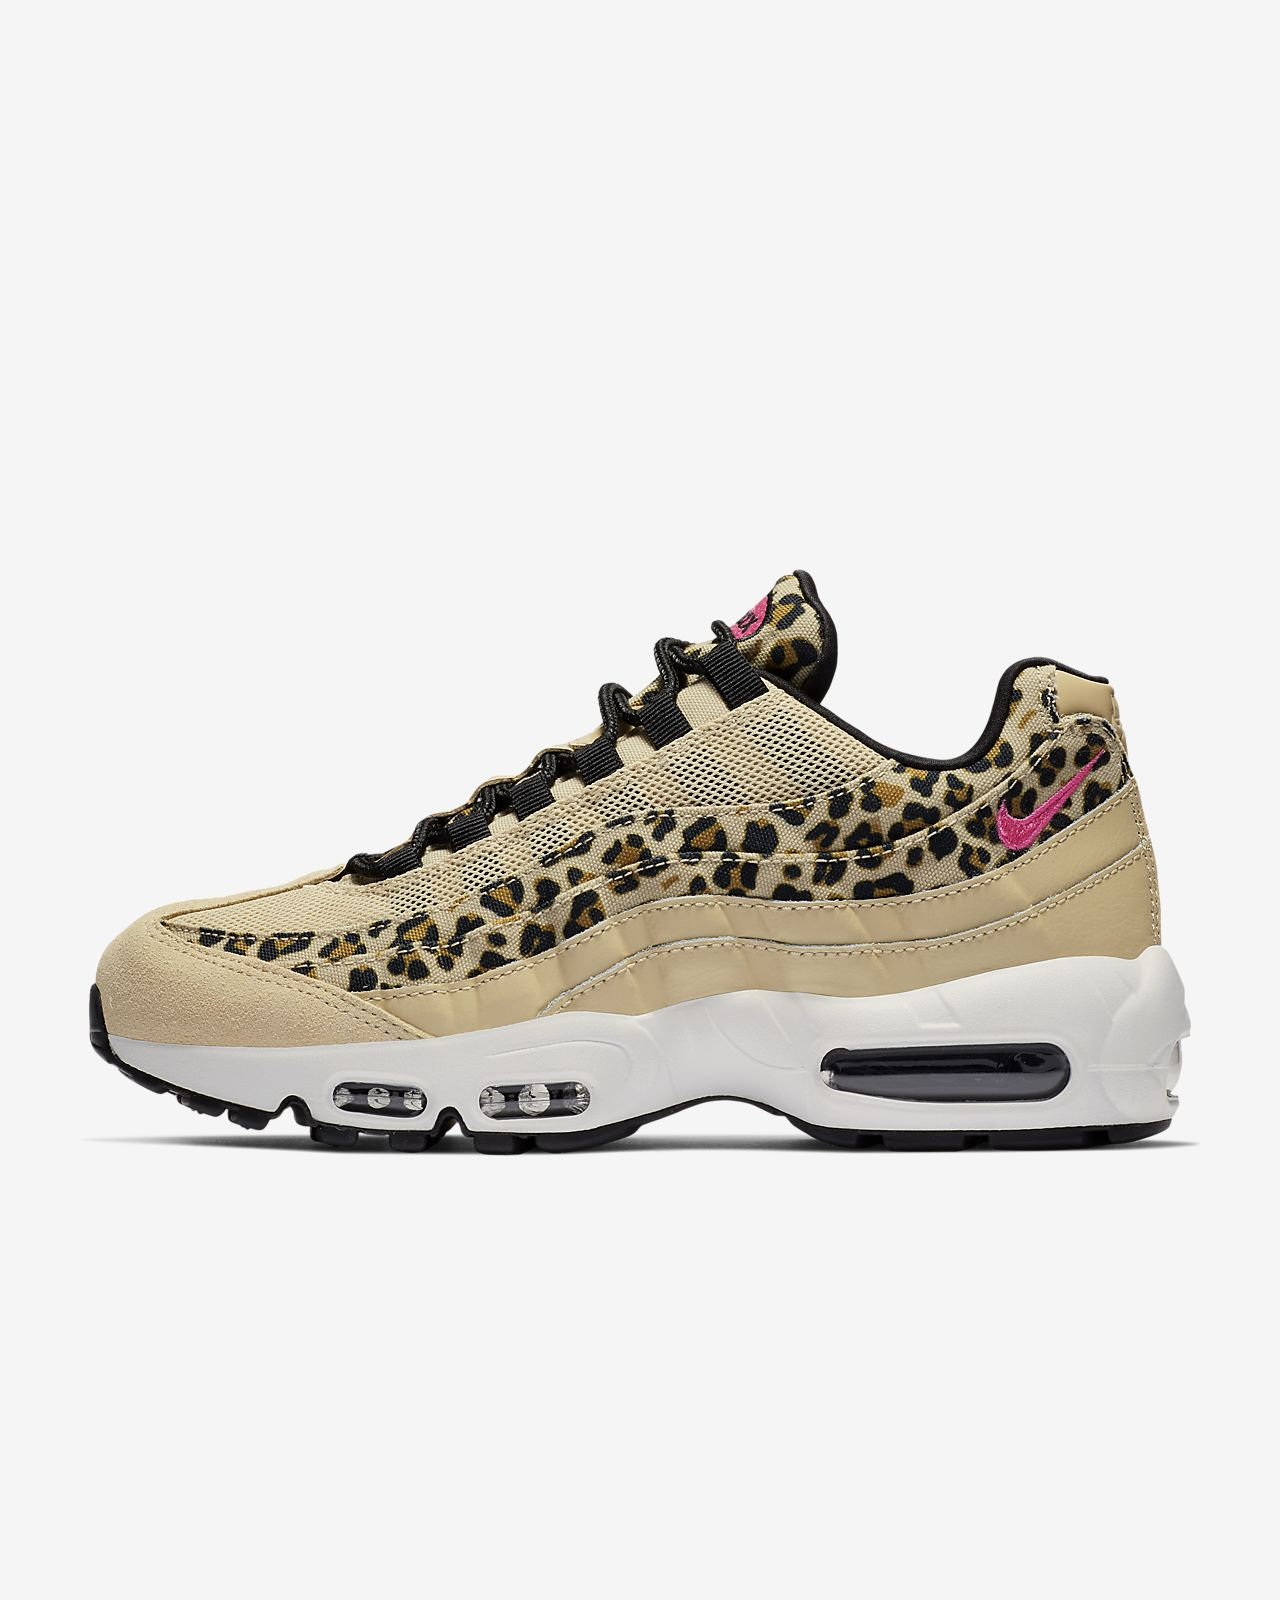 758f40a6f83d Nike Air Max 95 Premium Animal Women s Shoe. Nike.com AU